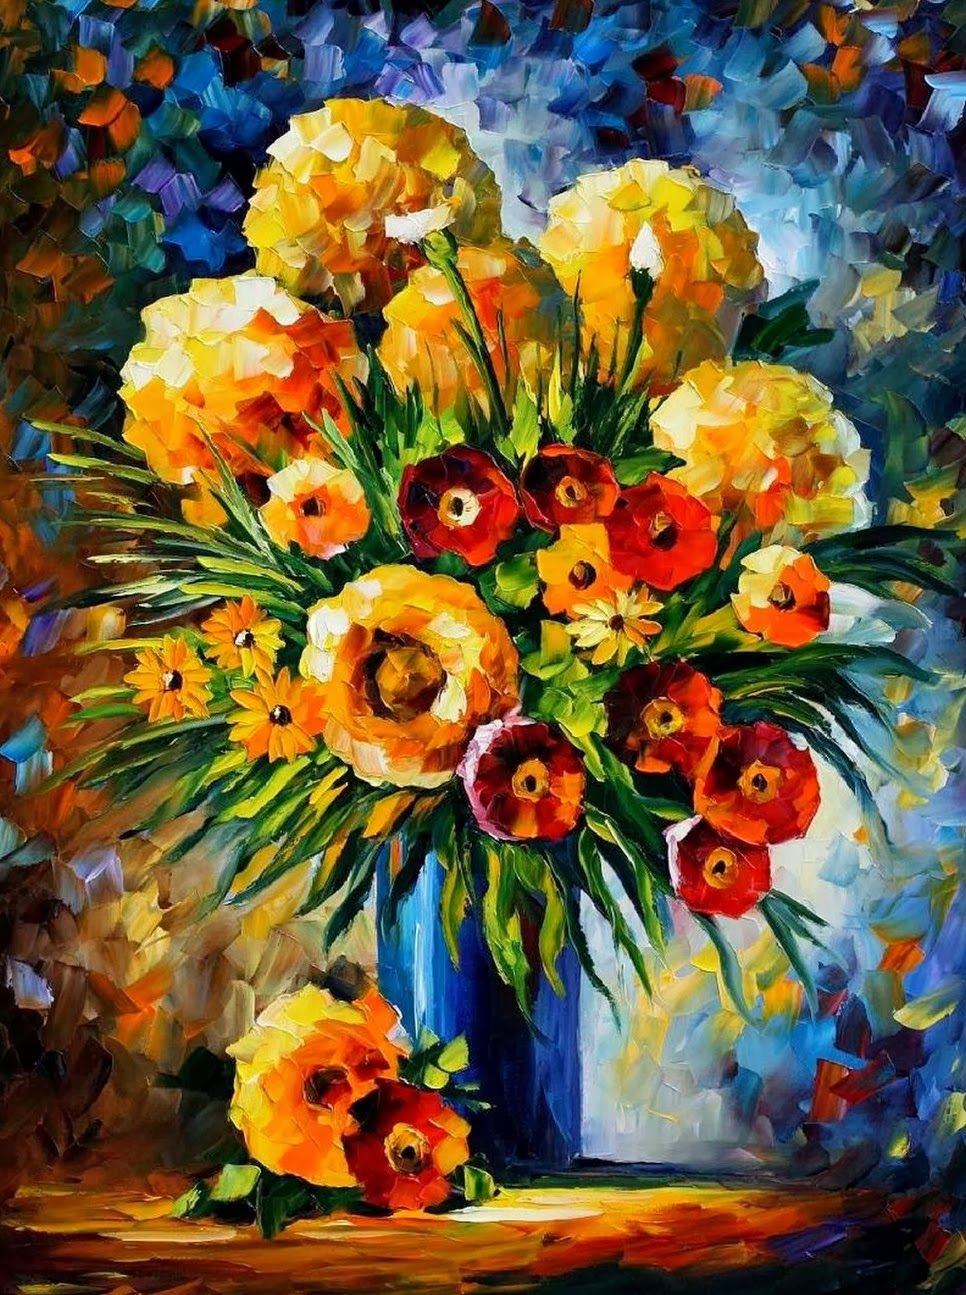 Resultado De Imagen Para Cuadros Con Espatula Flores Unique Canvas Art Oil Painting Flowers Art Painting Oil